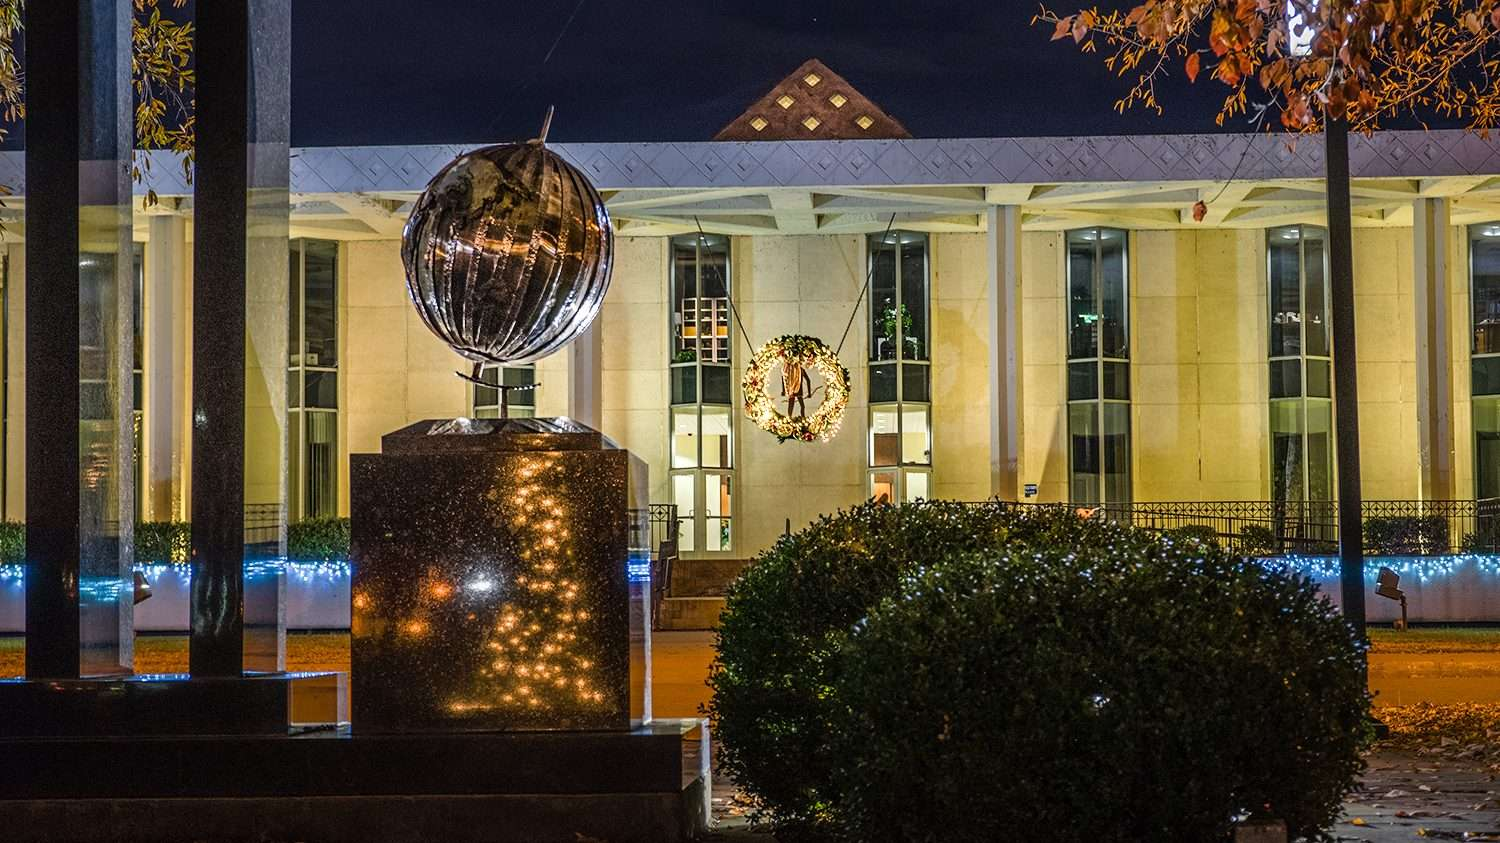 Nov 29, 2017 - Paducah City Hall Christmas Reef/photonews247.com